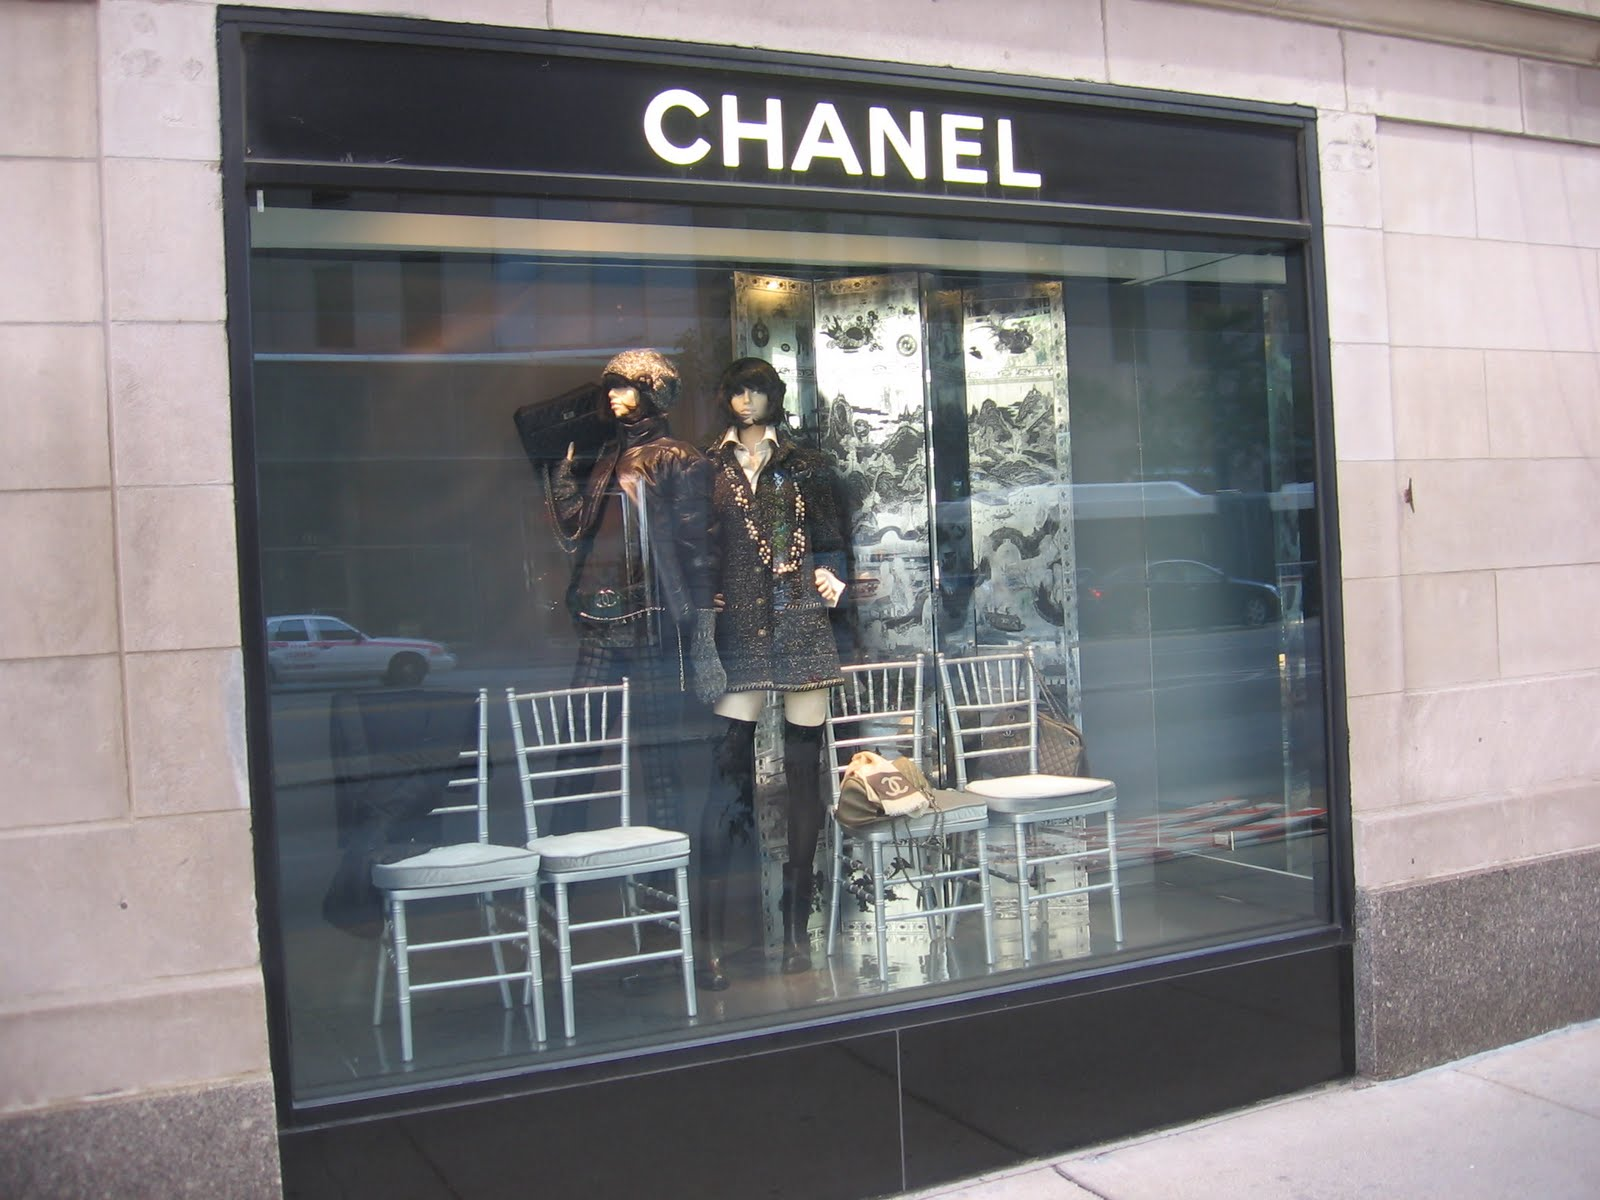 The Chicago Real Estate Local: Gold Coast storefronts ...